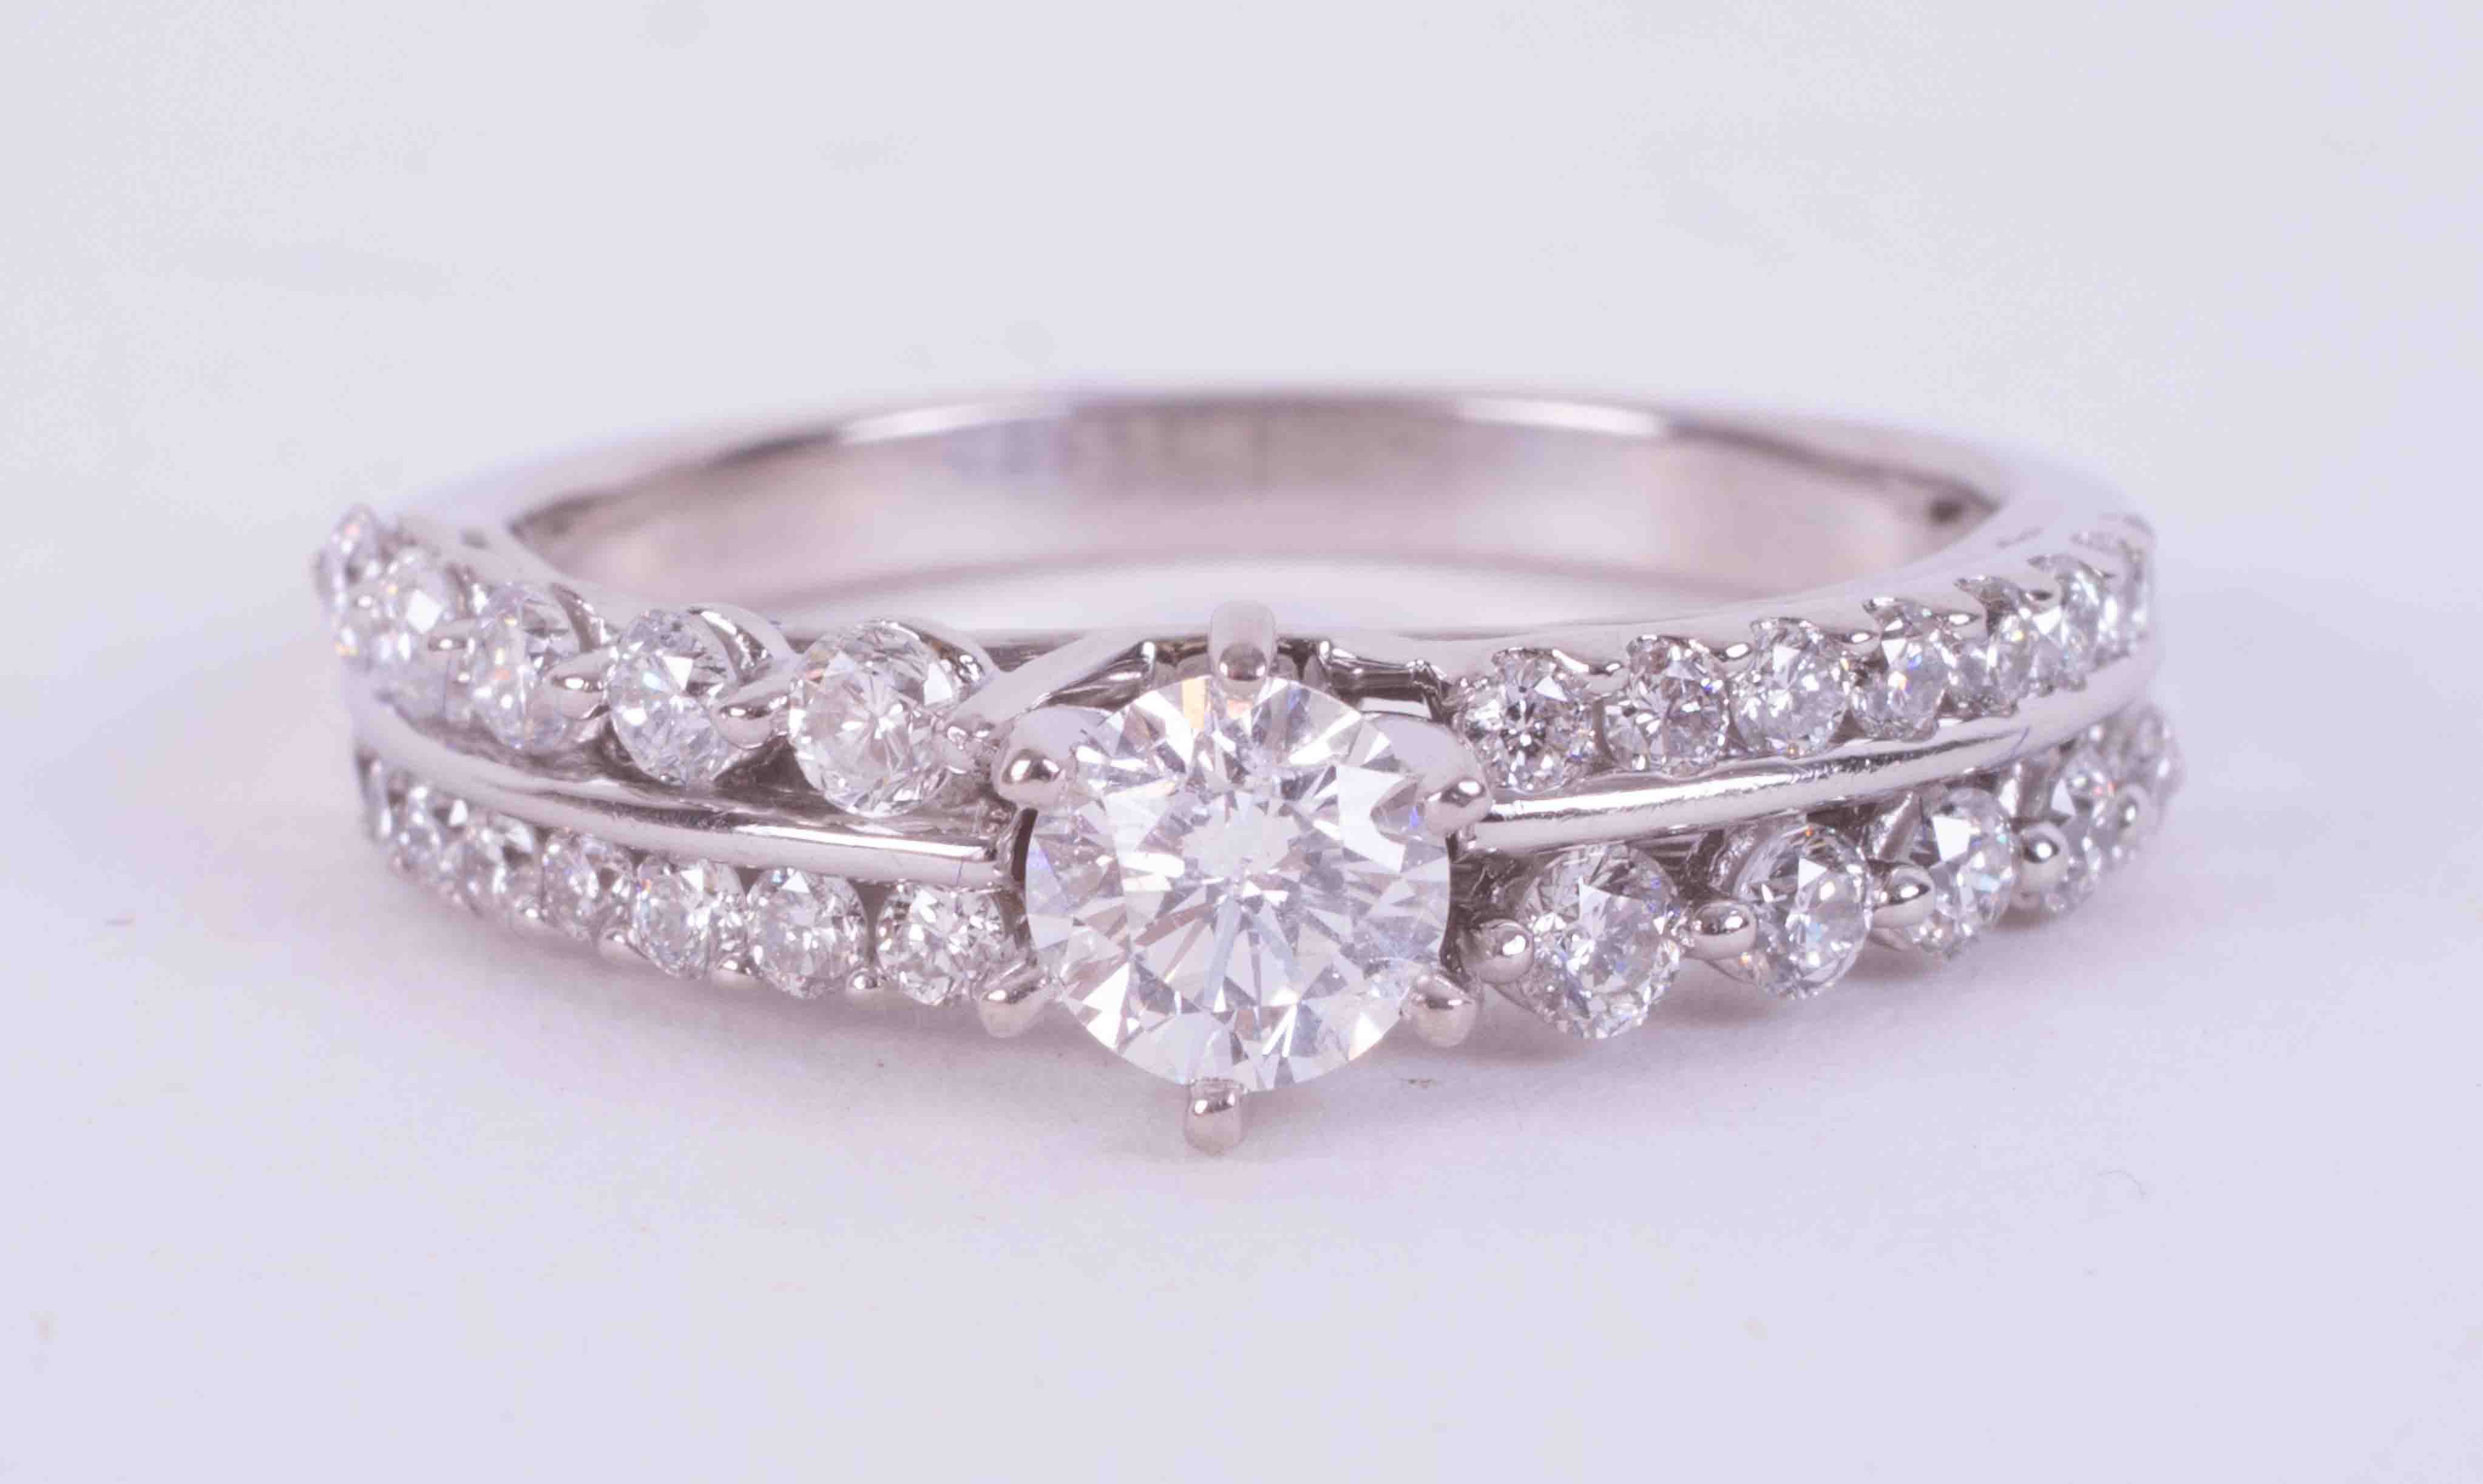 A 14k white gold ornate ring set with a double row of approx. 0.32 carats of round brilliant